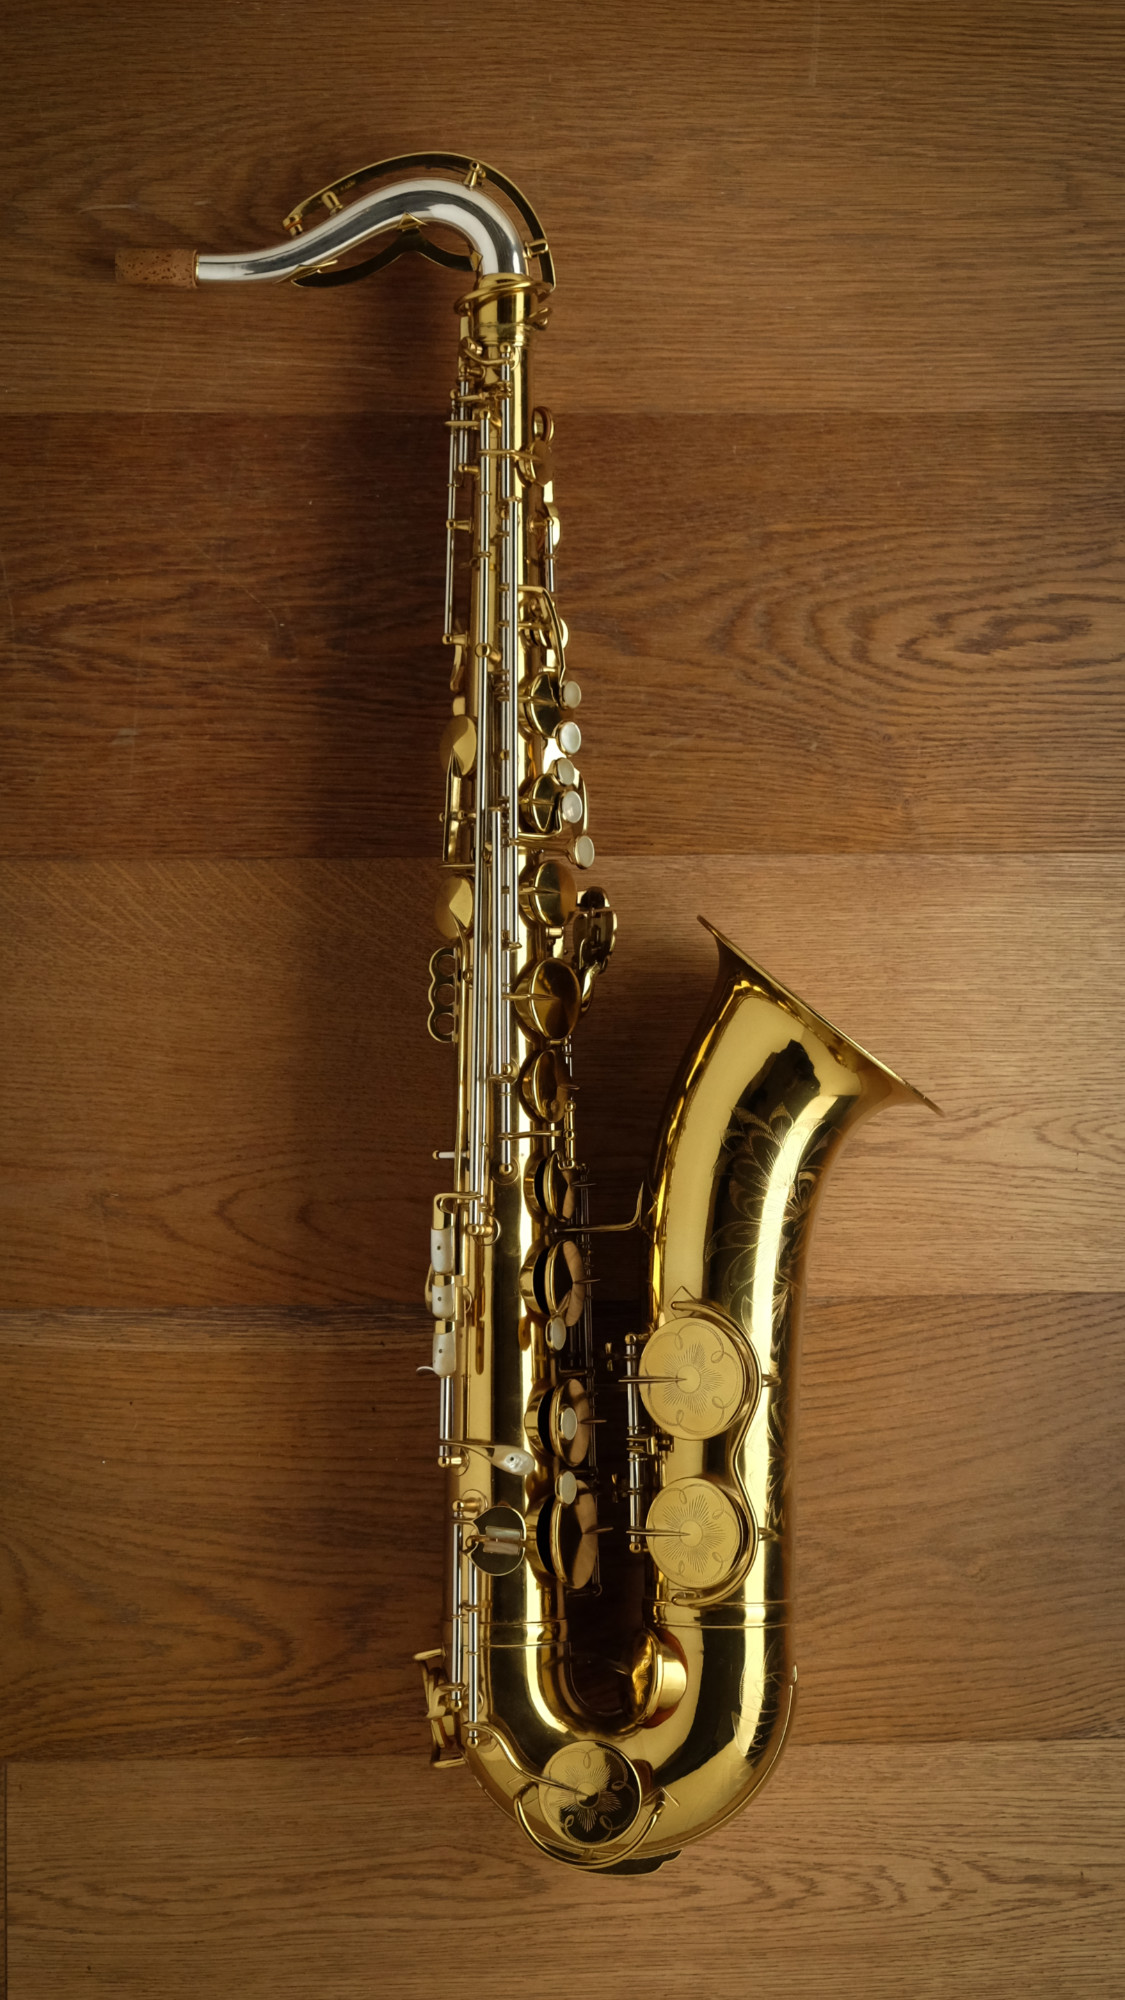 (Used) King Zephyr Special Tenor Sax circa.1937